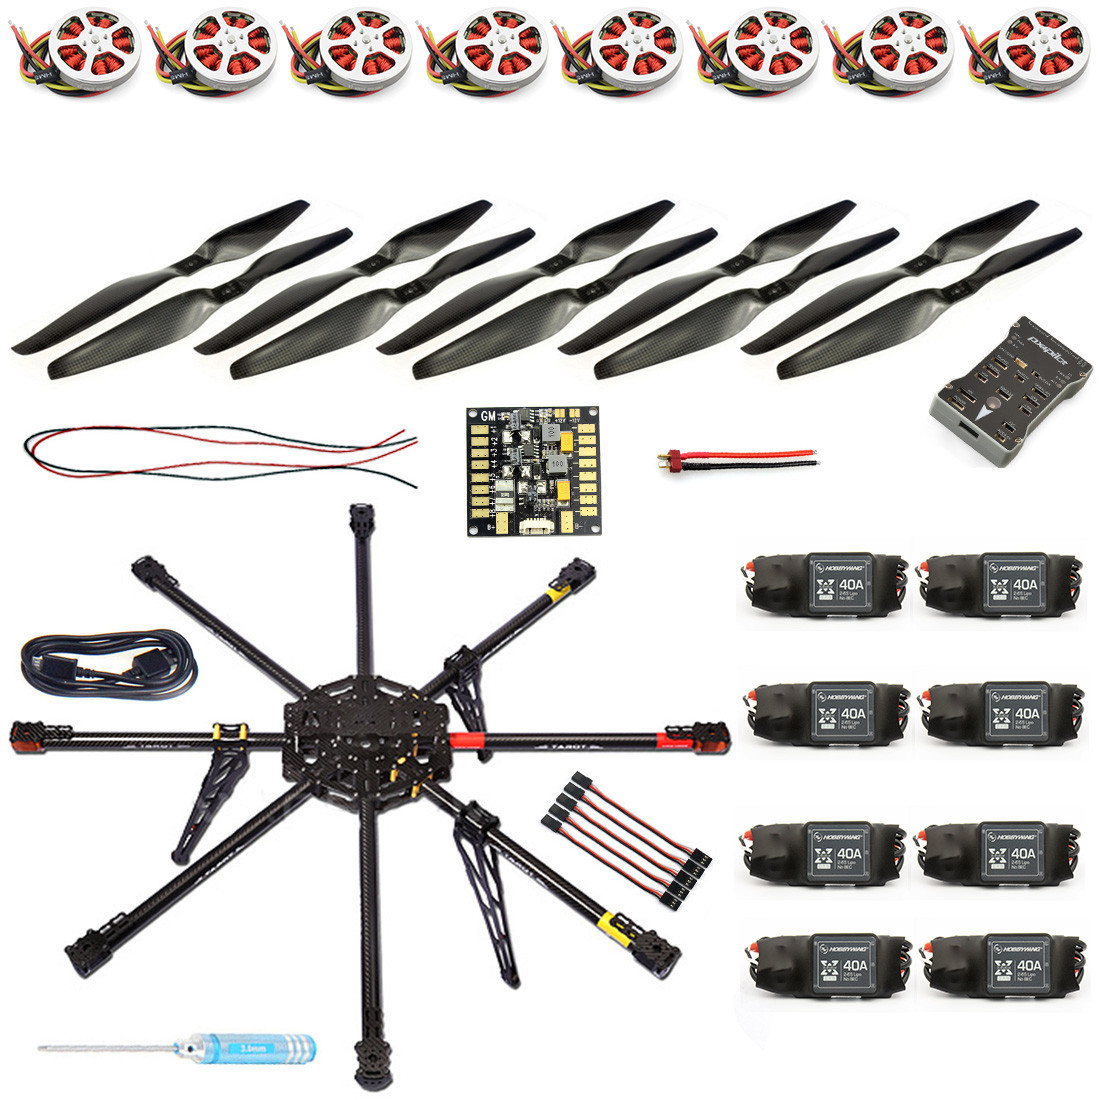 JMT DIY 8-Axle Unassembled RC Drone 1000mm Carbon Octocopter PX4 PIX M8N GPS RC Drone PNF Kit No Remote Battery FPV F04765-B